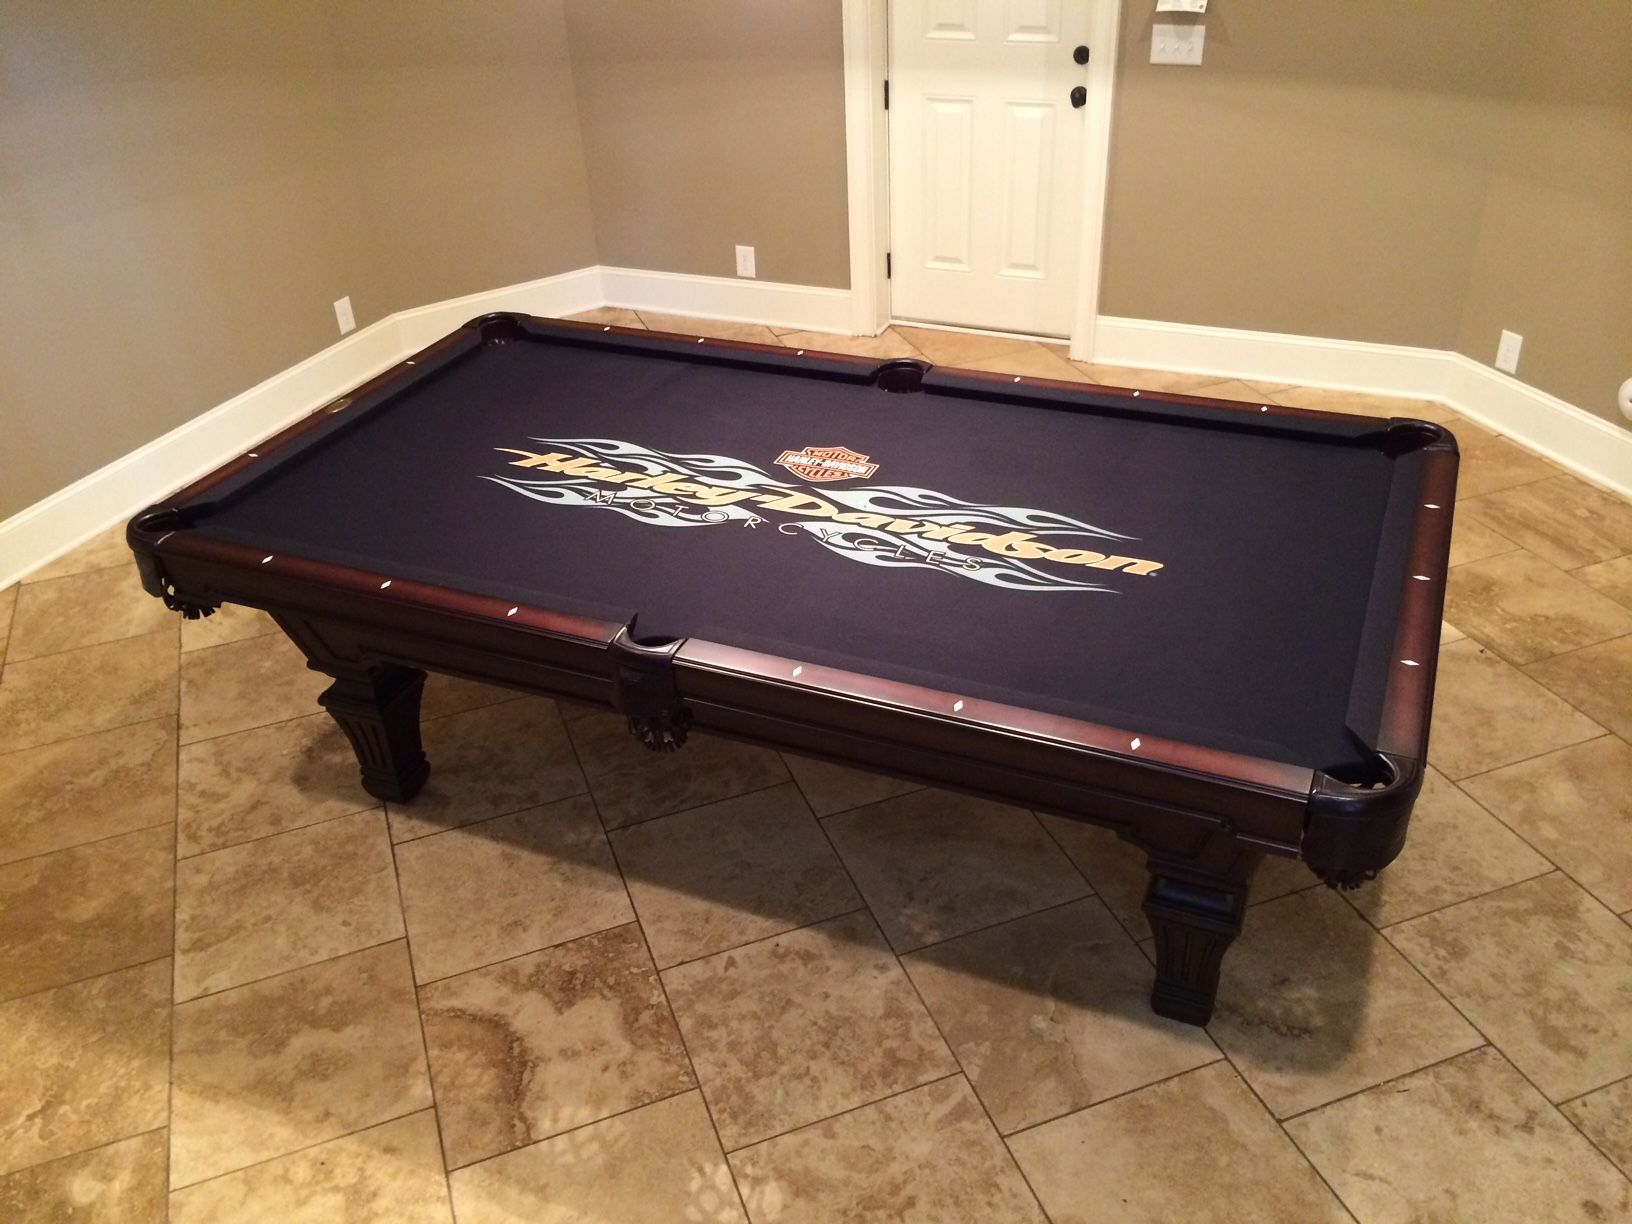 Best Pool Table Felt EVER! Available Through Everything Billiards, Of  Course! Olhausen Hampton